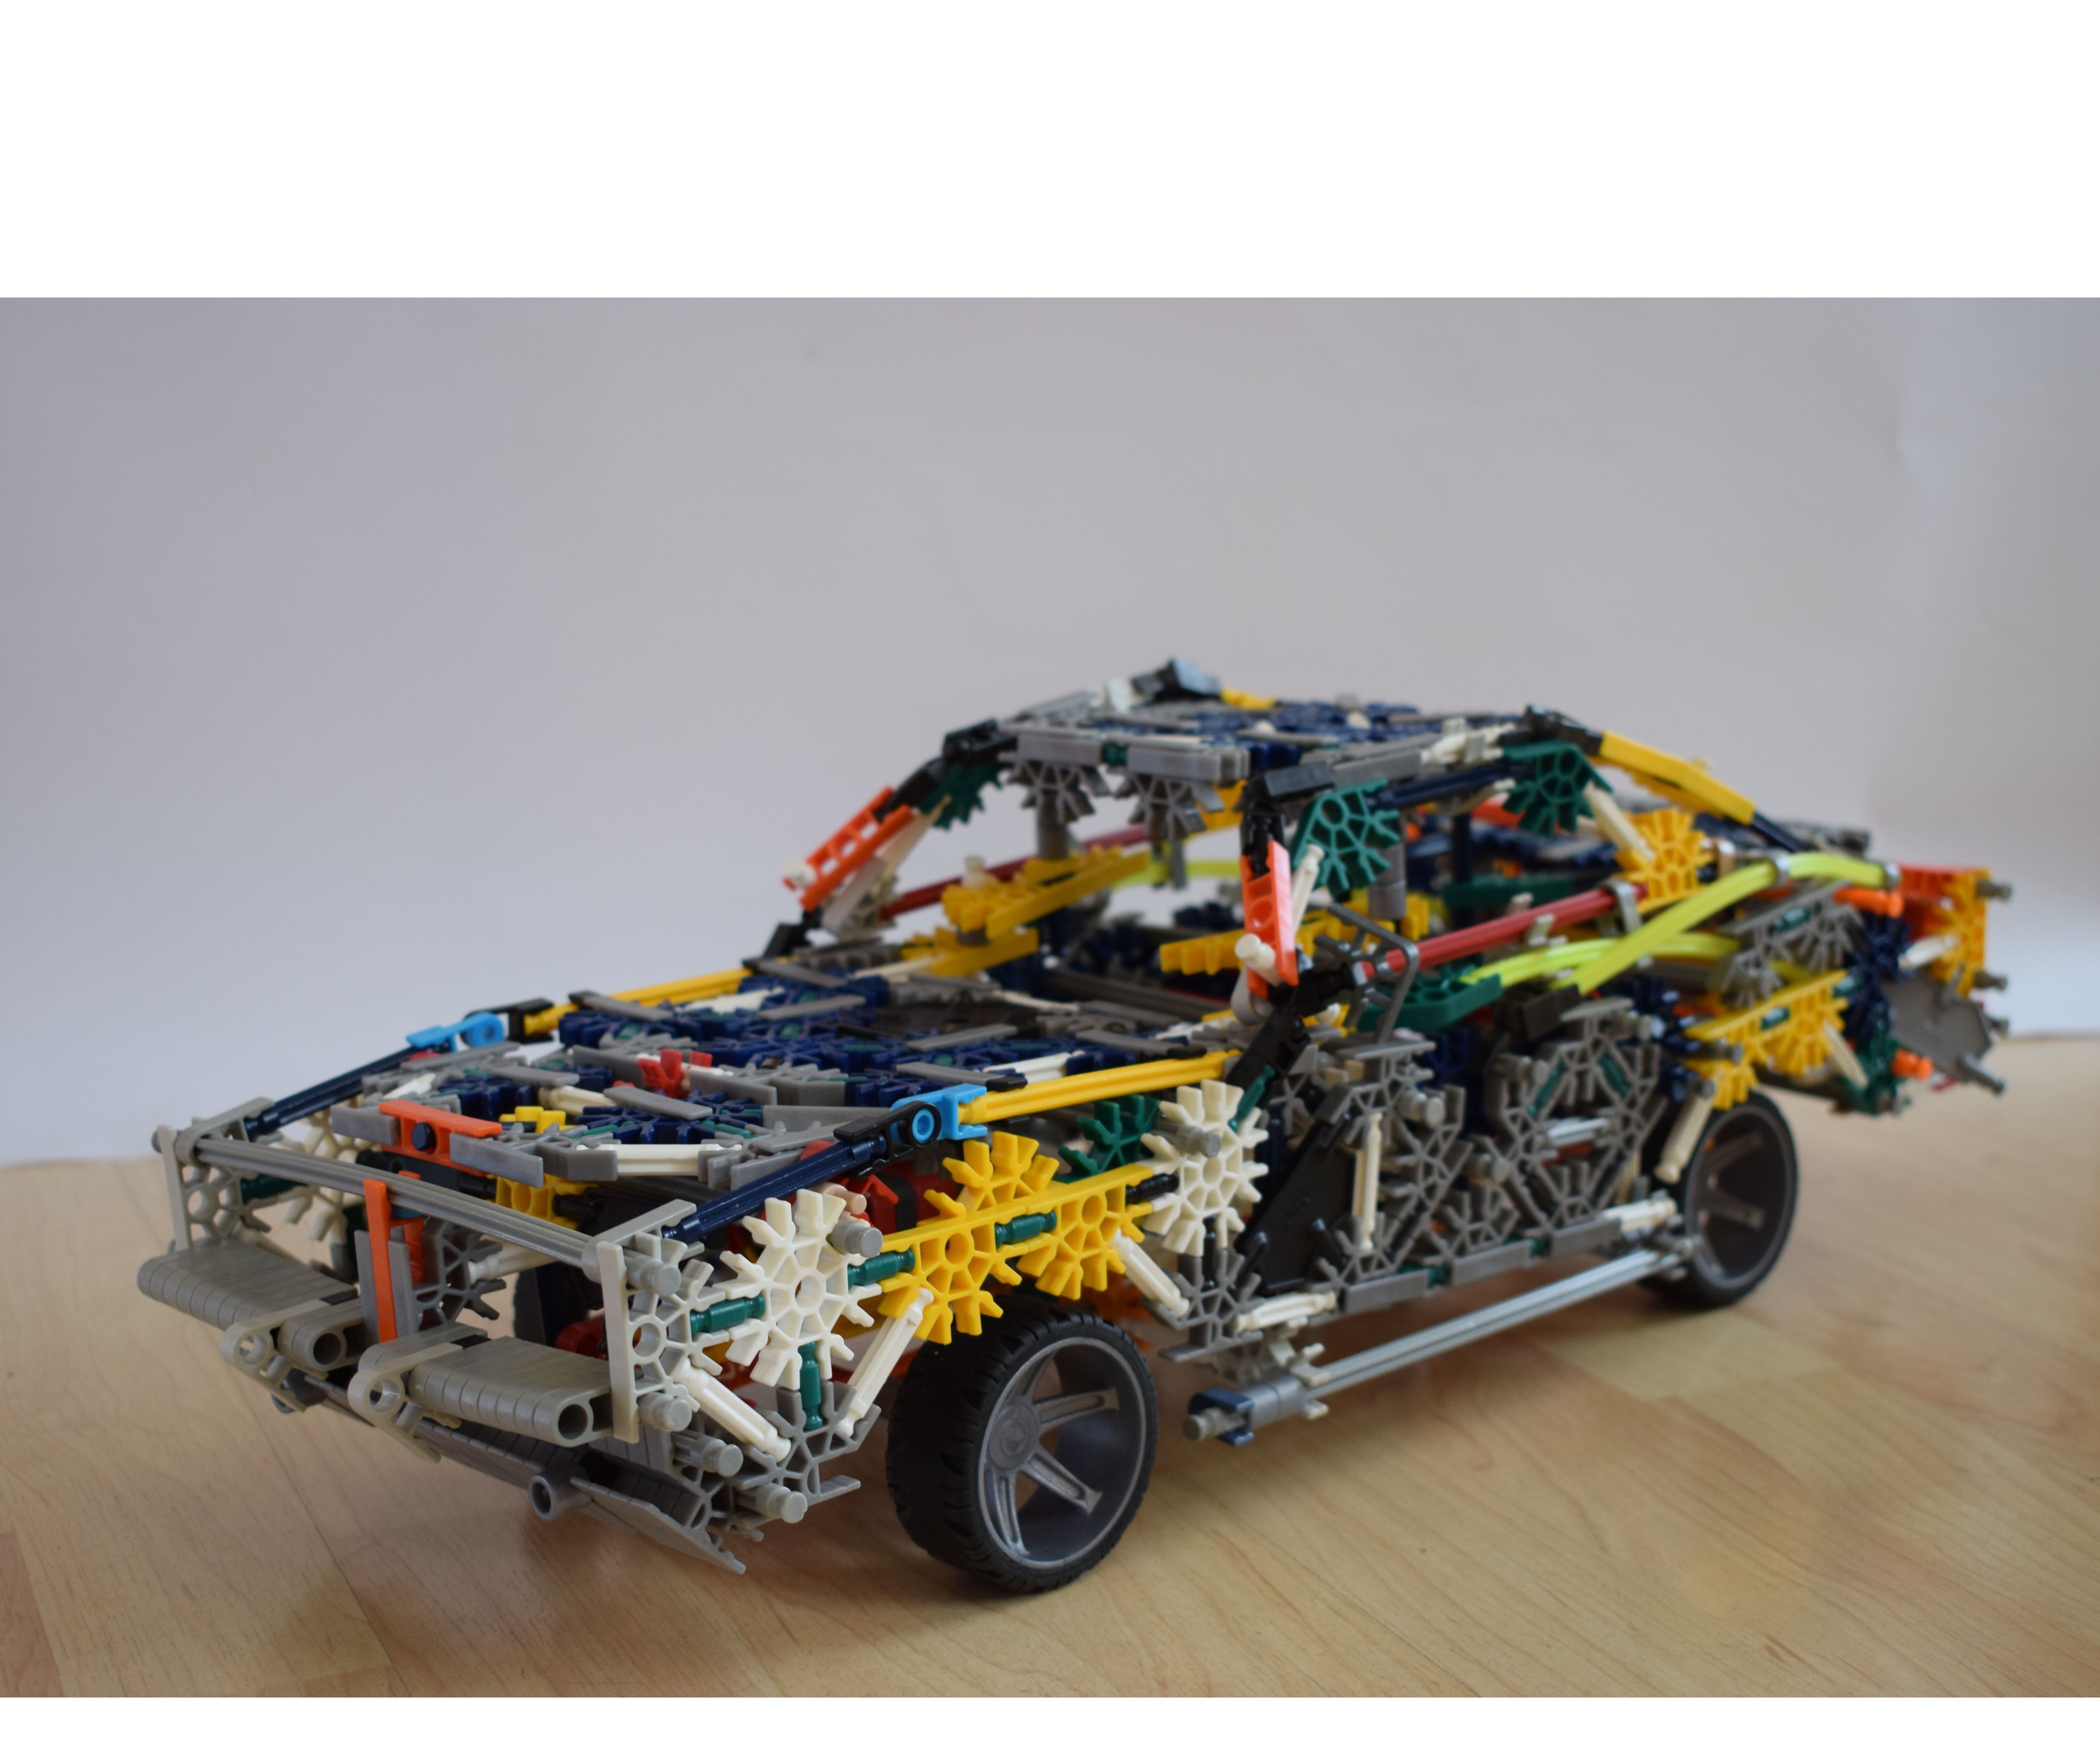 K'nex Muscle Car - Dodge Charger 1969